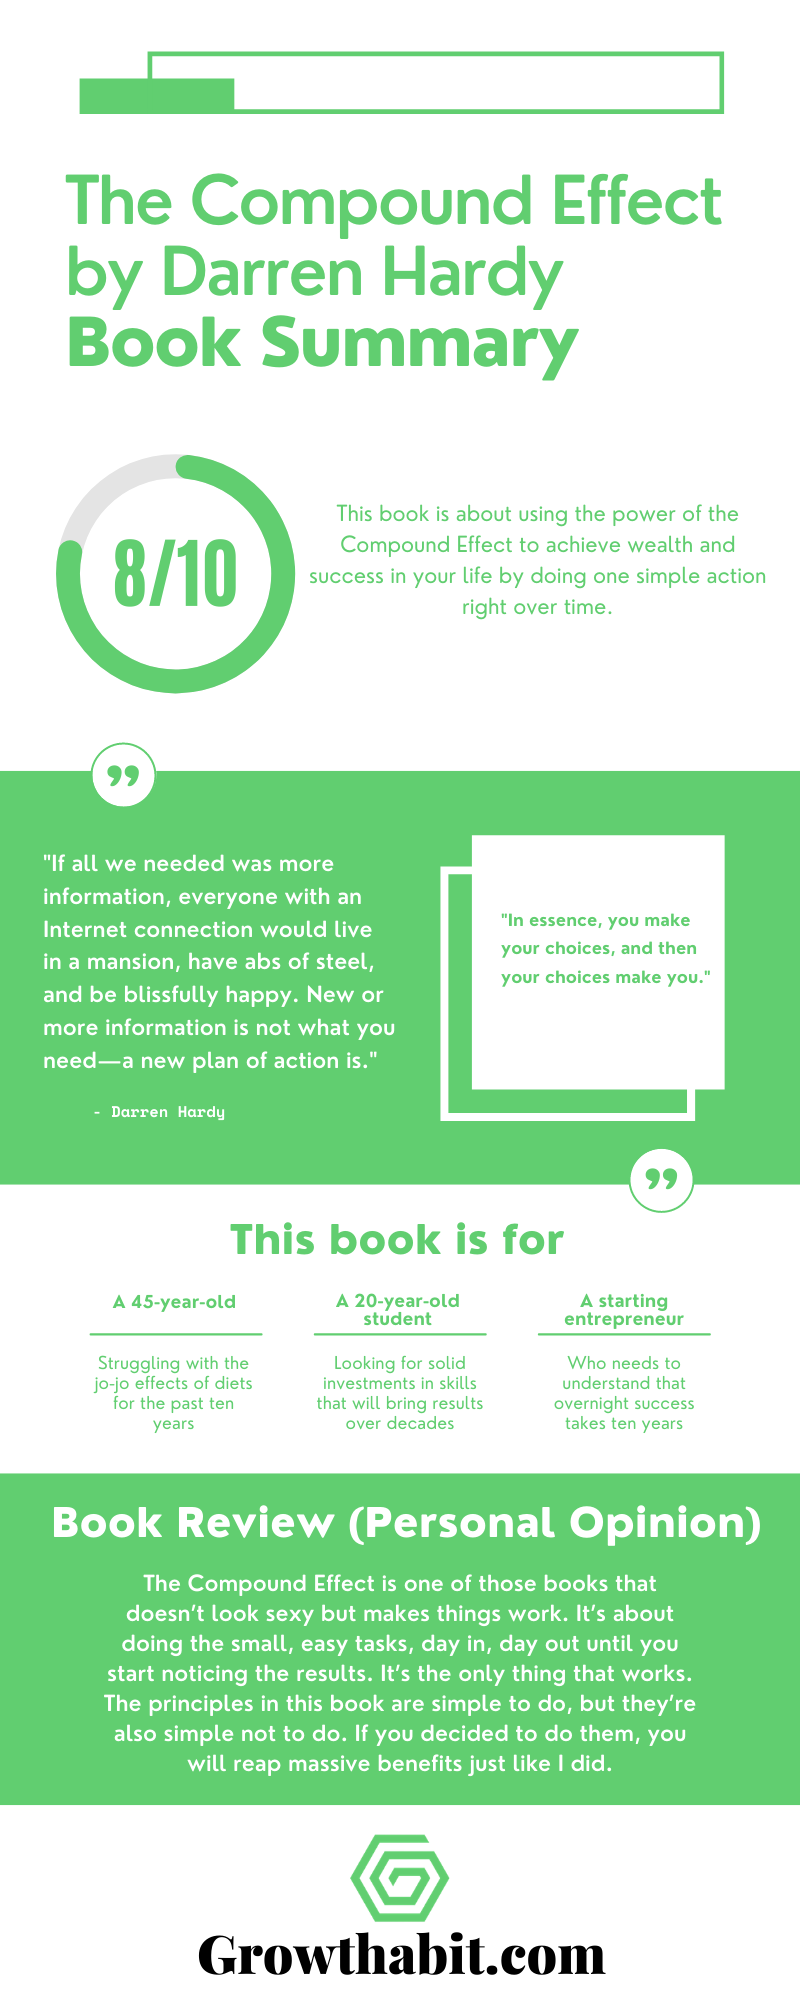 The Compound Effect Darren Hardy Book Summary Infographic